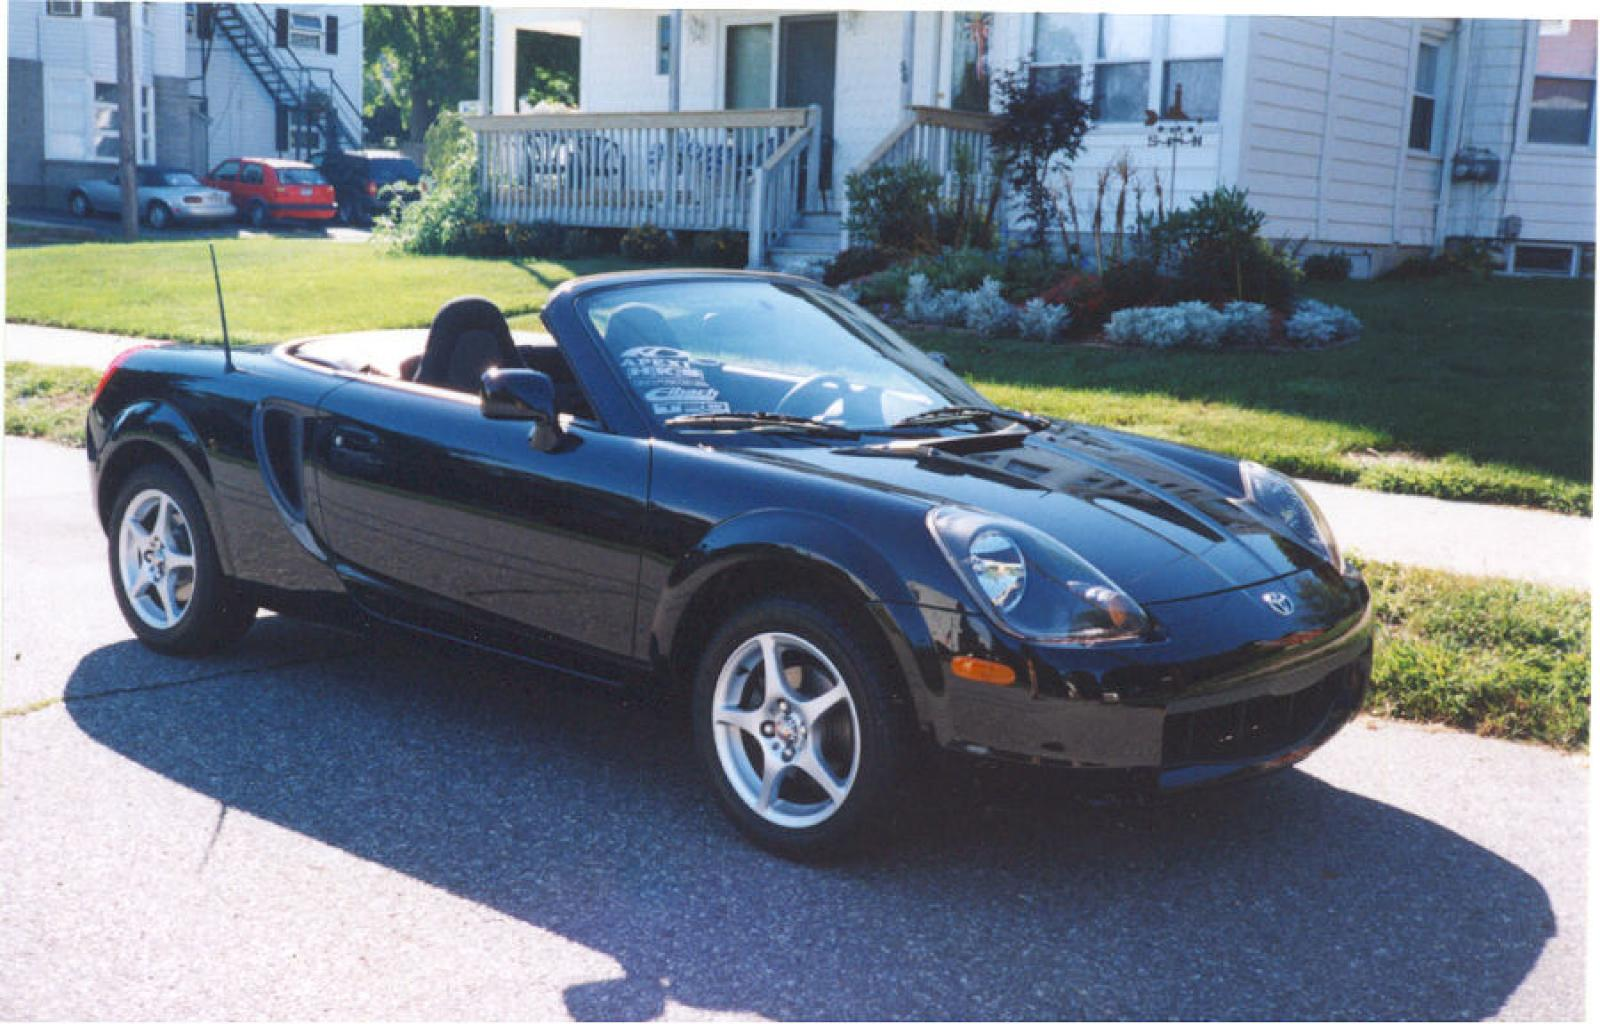 2001 Toyota Mr2 Spyder Information And Photos Zomb Drive